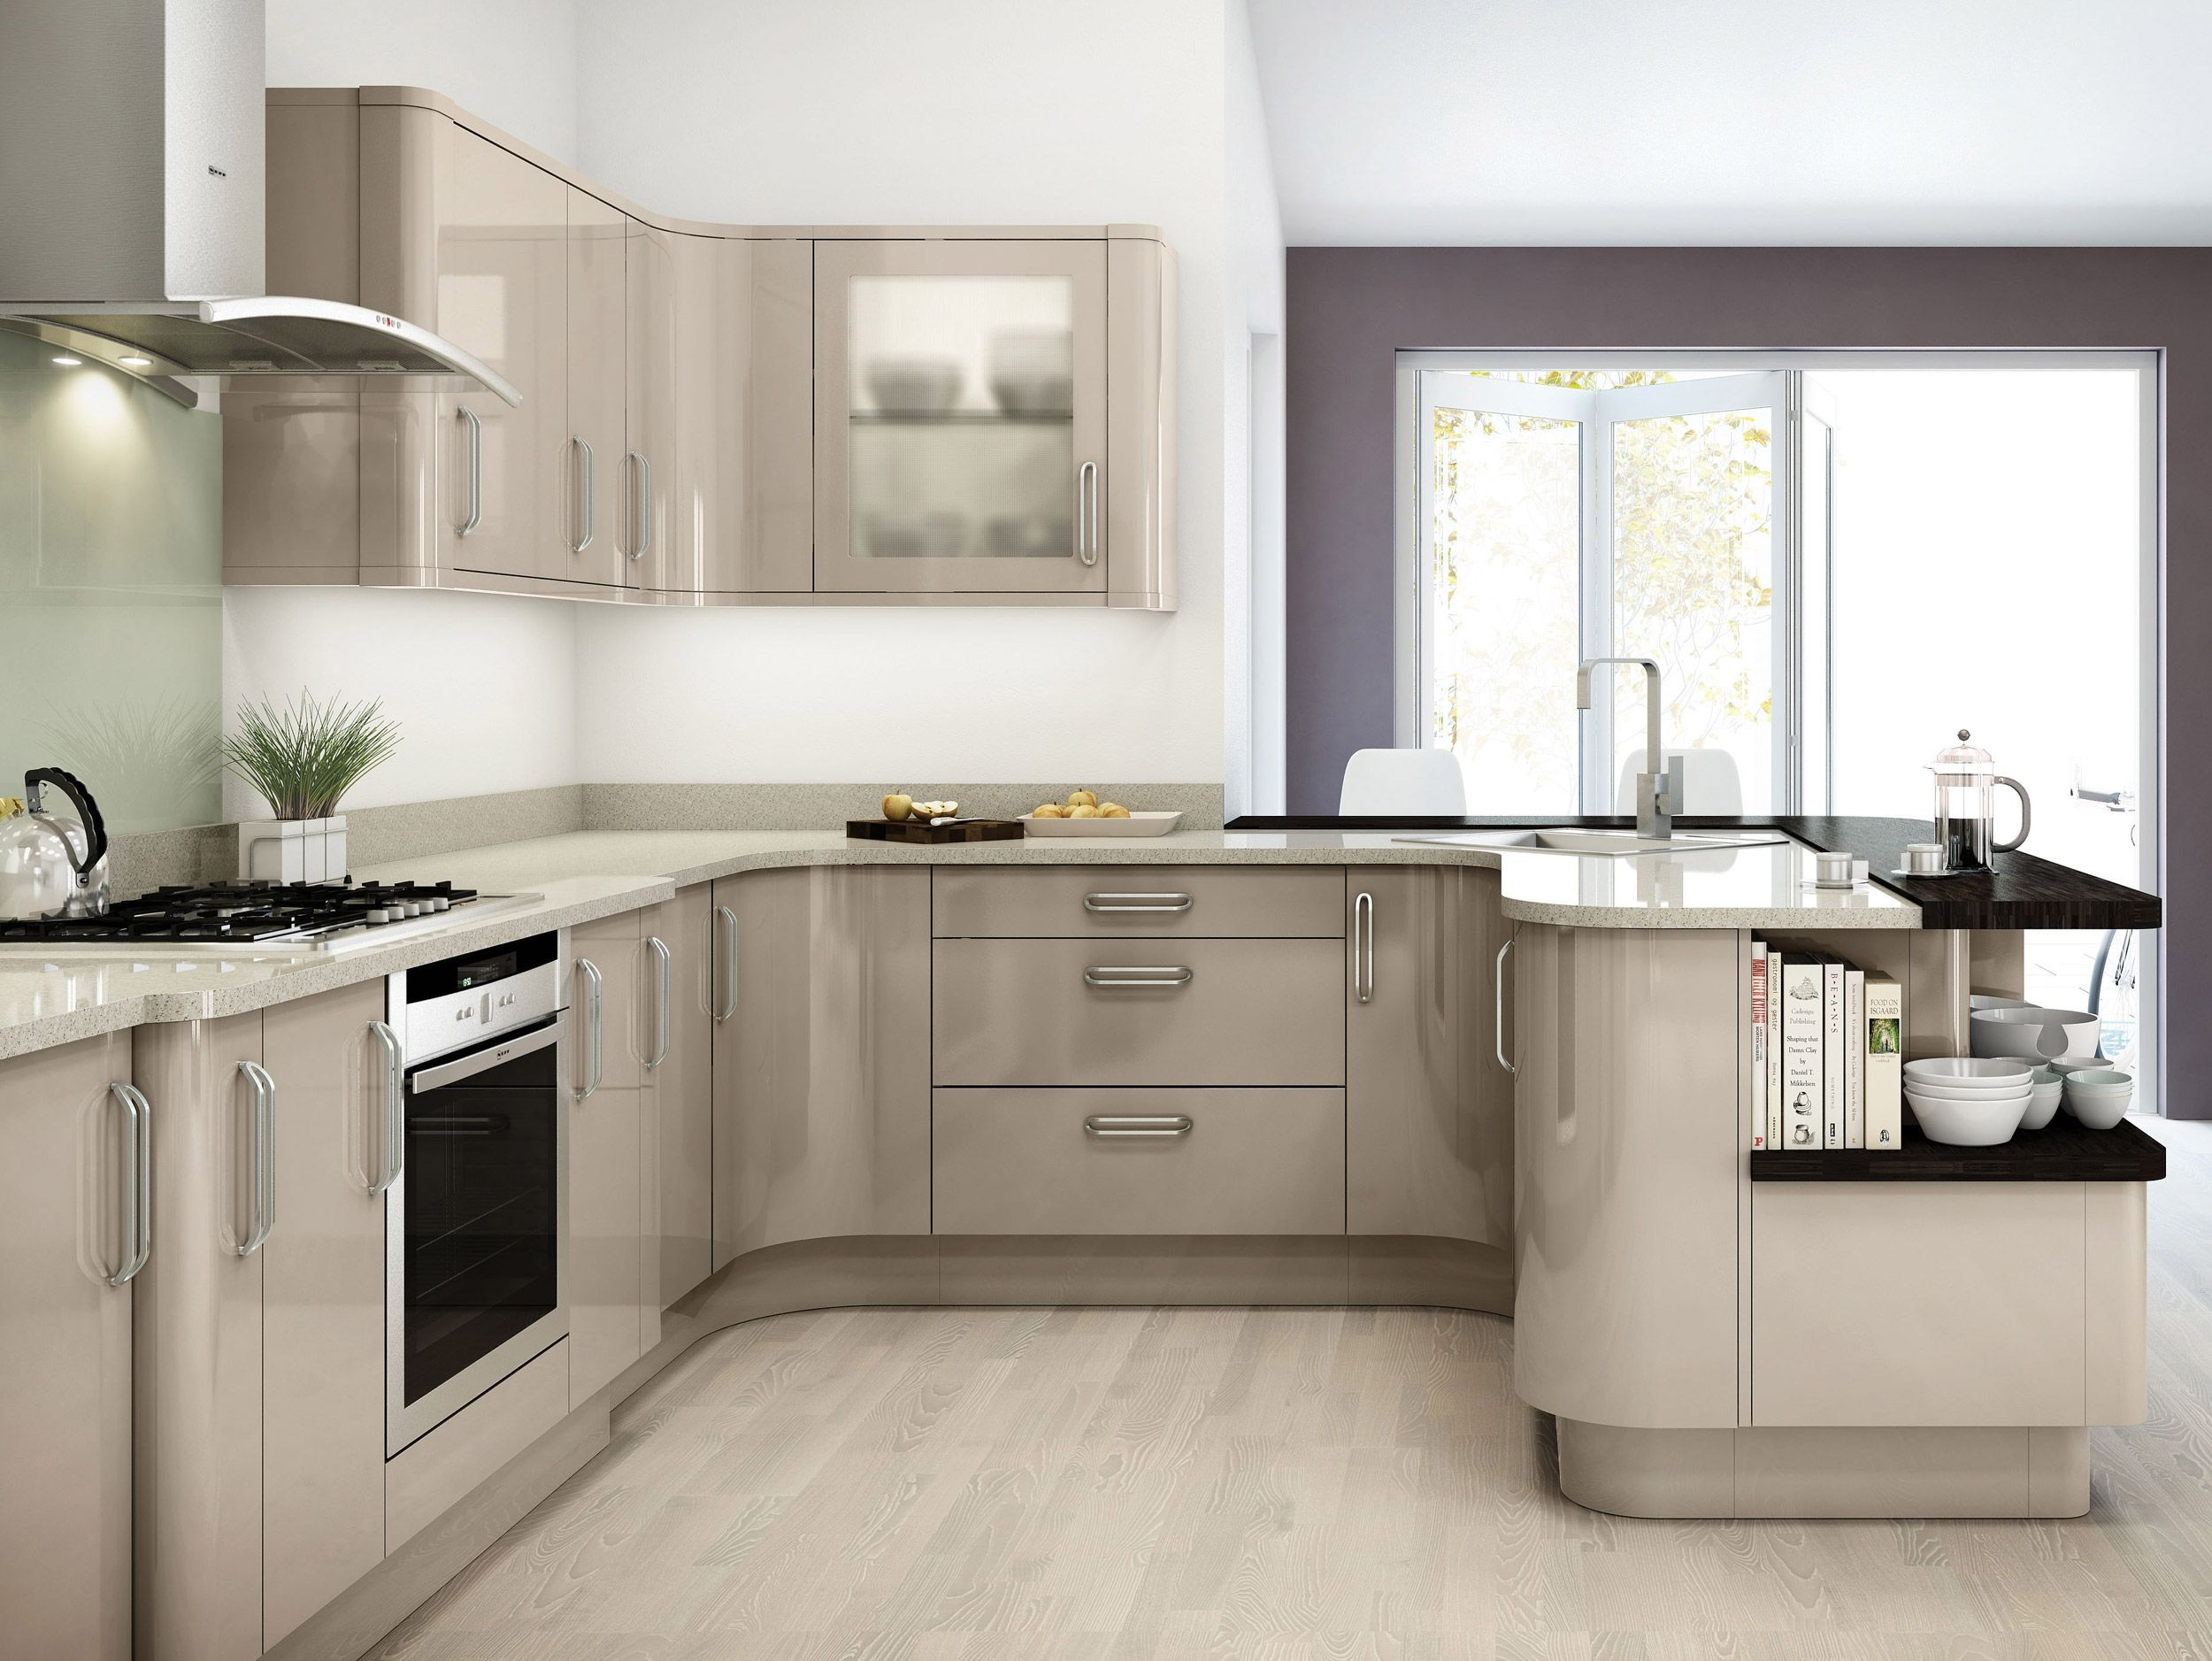 glossy-colors-in-kitchen-1 80+ Unusual Kitchen Design Ideas for Small Spaces in 2021